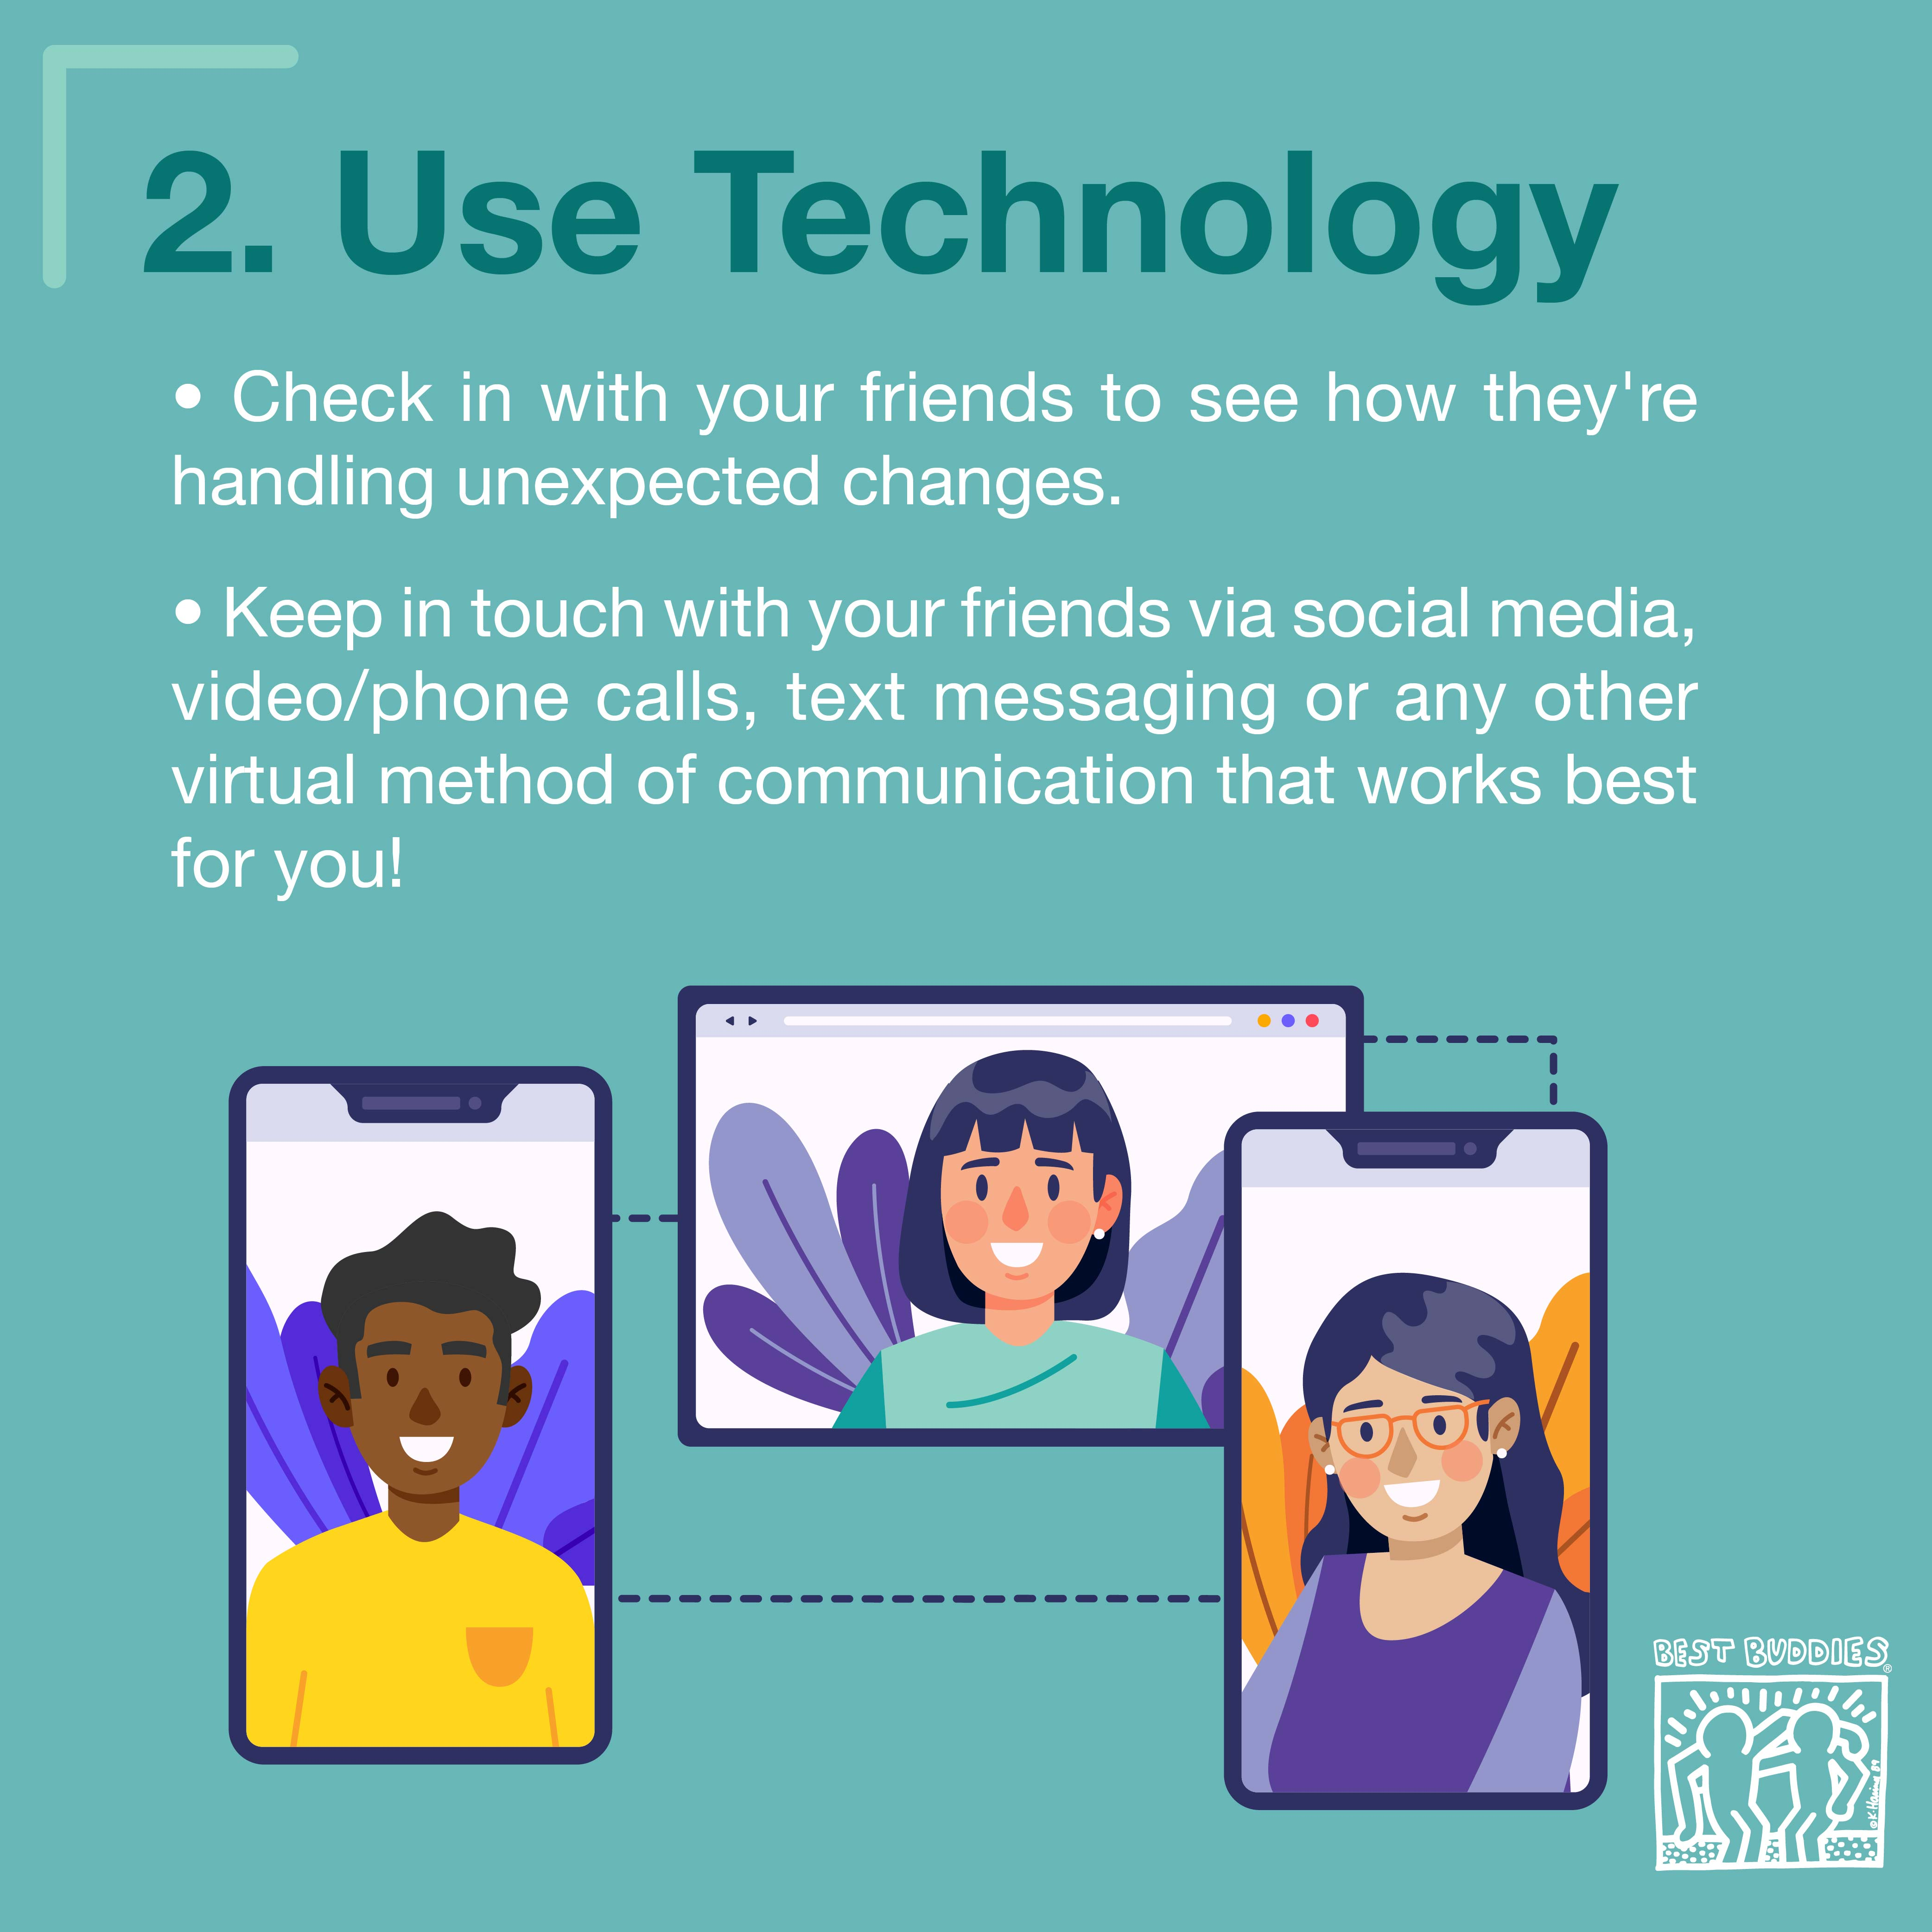 2. Use Technology! Check in with your friends to see how they're handling unexpected changes. Keep in touch with your friends via social media, video/phone calls, text messaging, or any other virtual method of communication that works best for you!